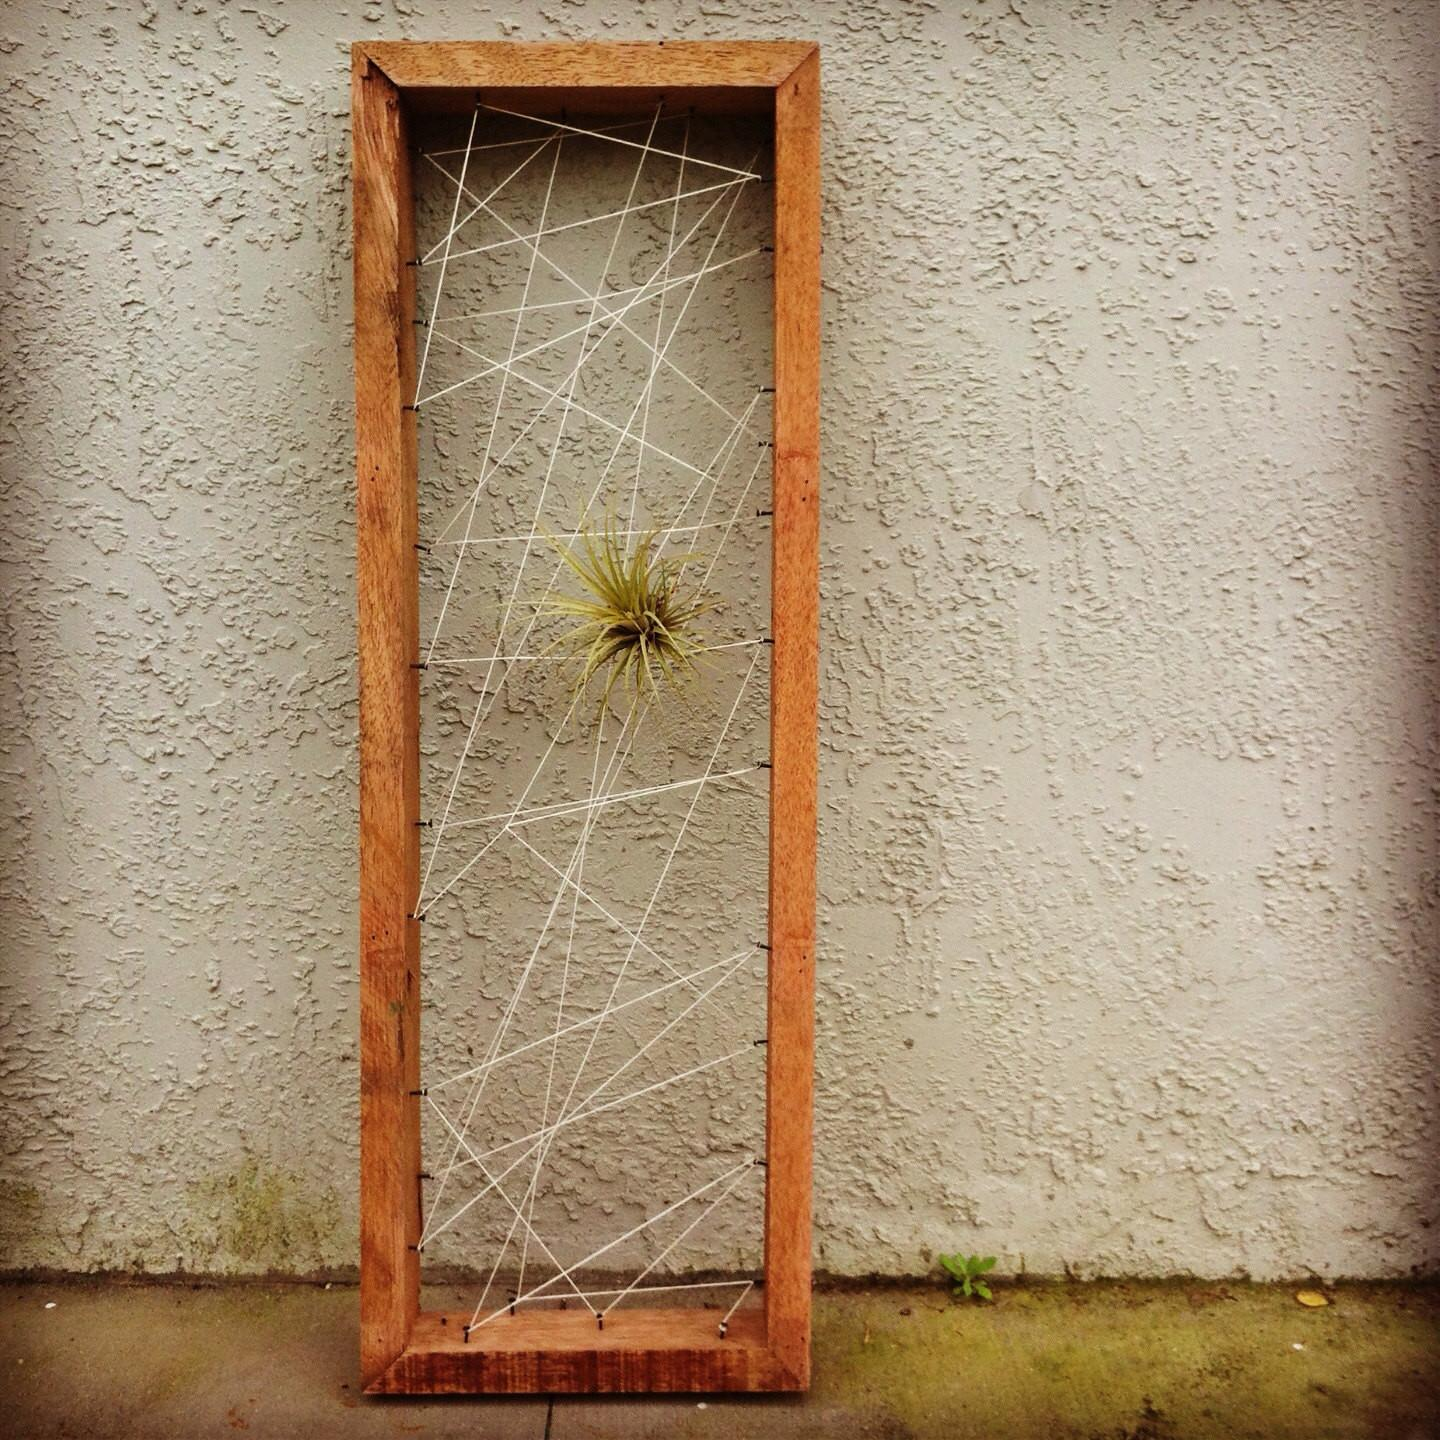 Wall Art Air Plant Personal Rustic Reclaimed